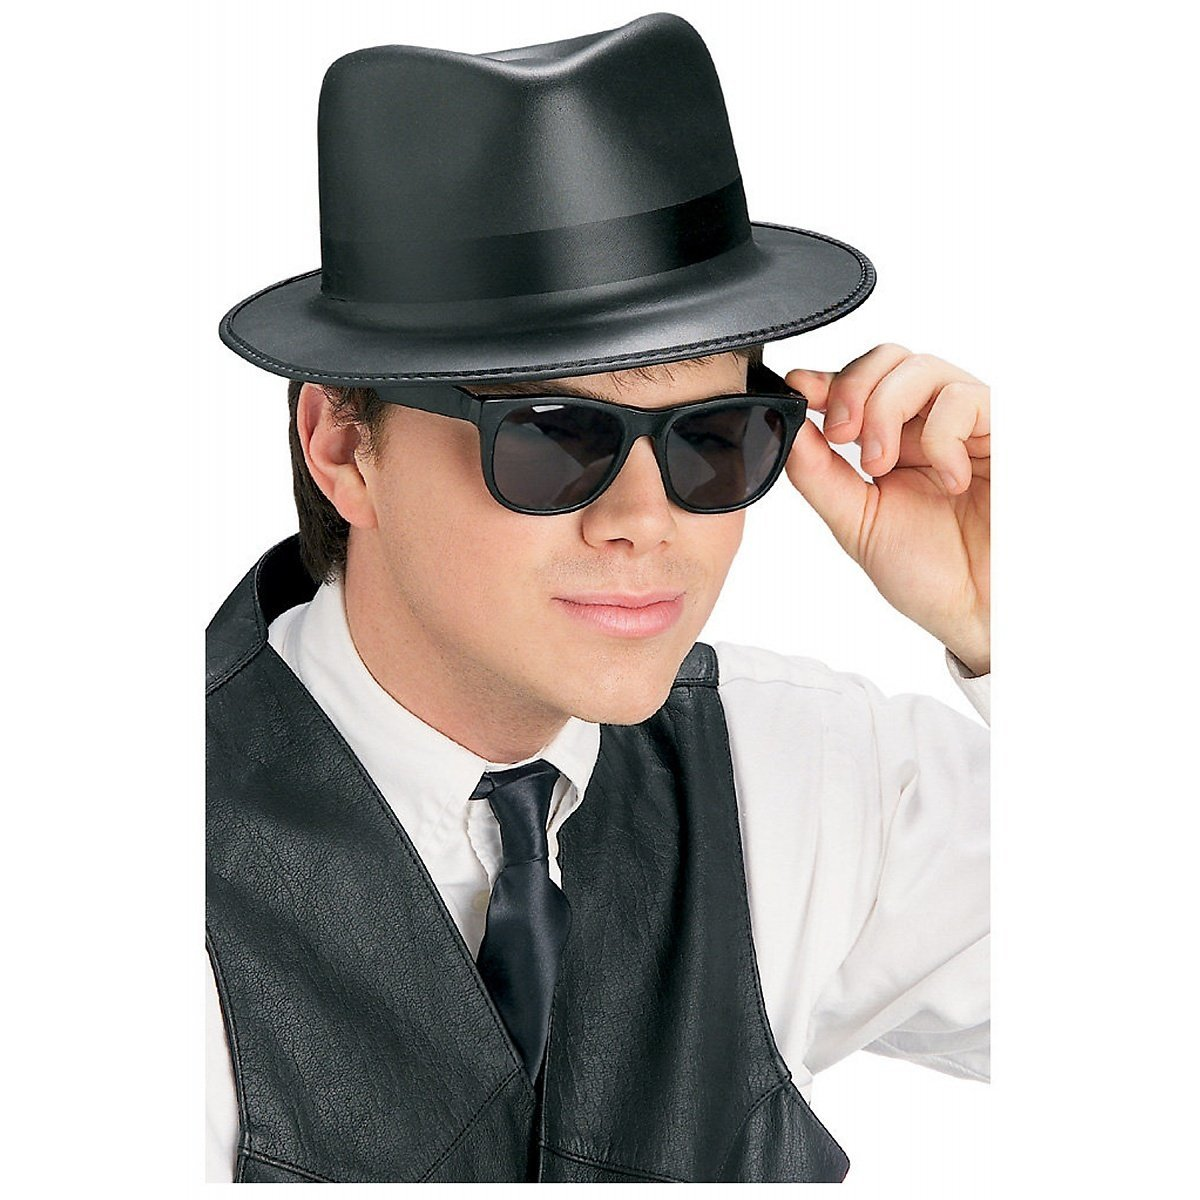 b2a13a7eda The Blues Brothers Hat   Glasses Set 568